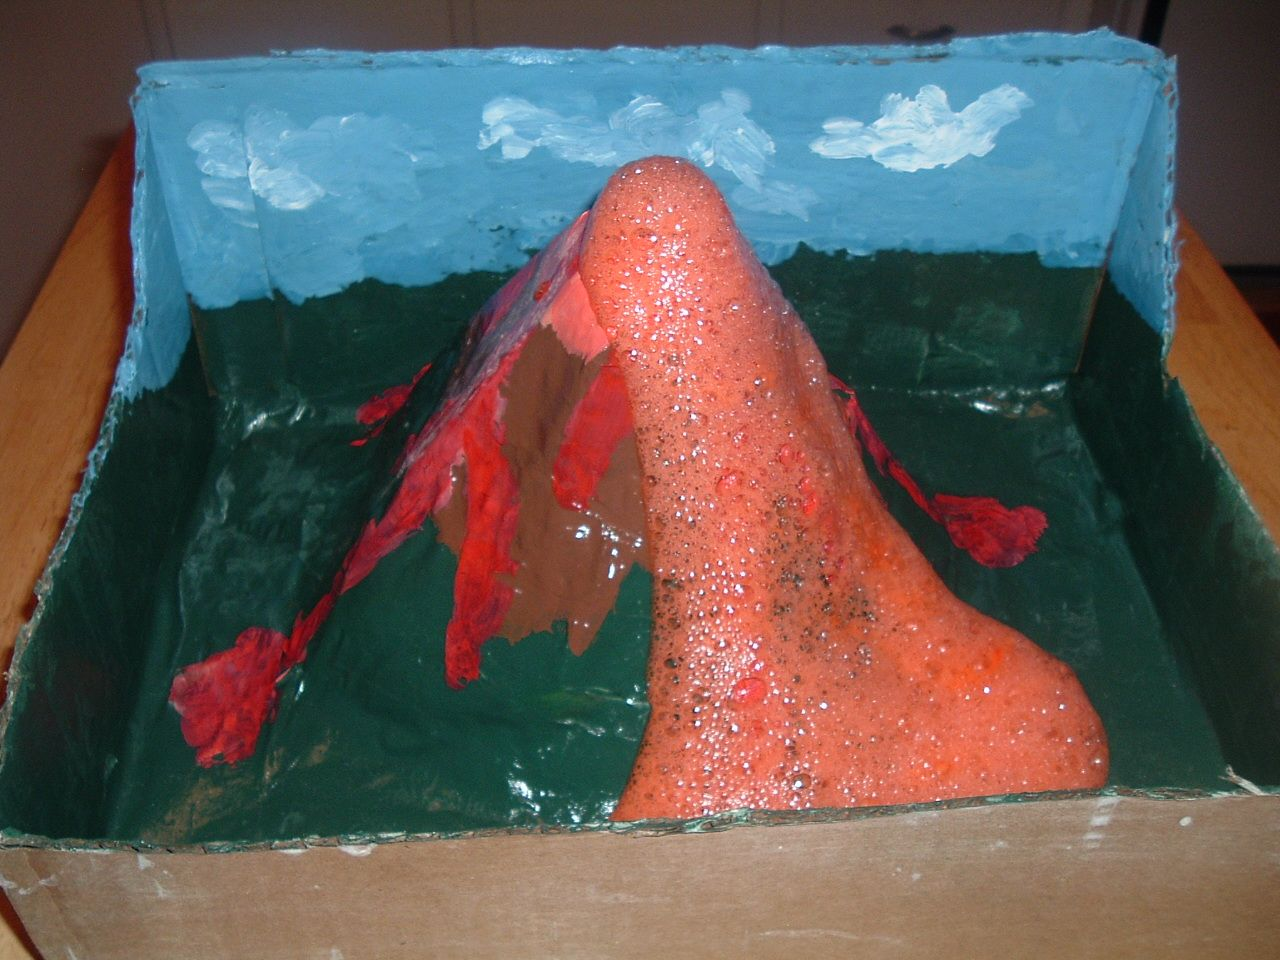 Basic Earth Science Projects For Kids An Erupting Volcano